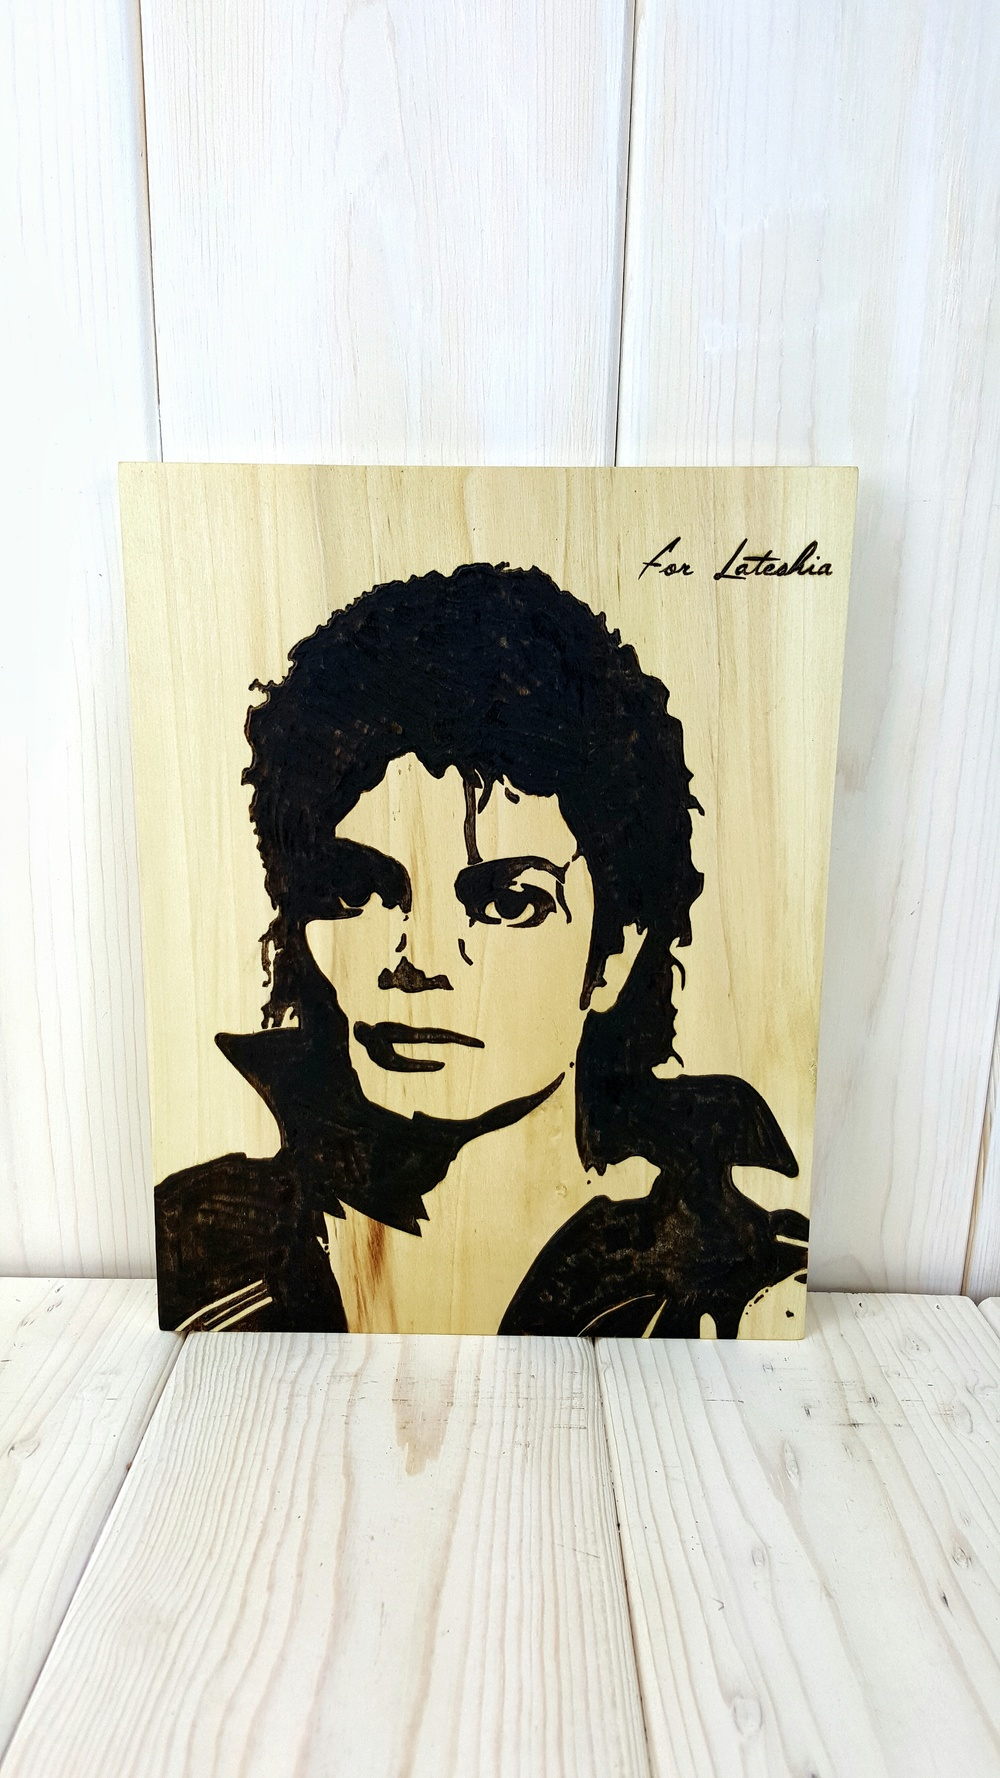 Michael Jackson Woodburning